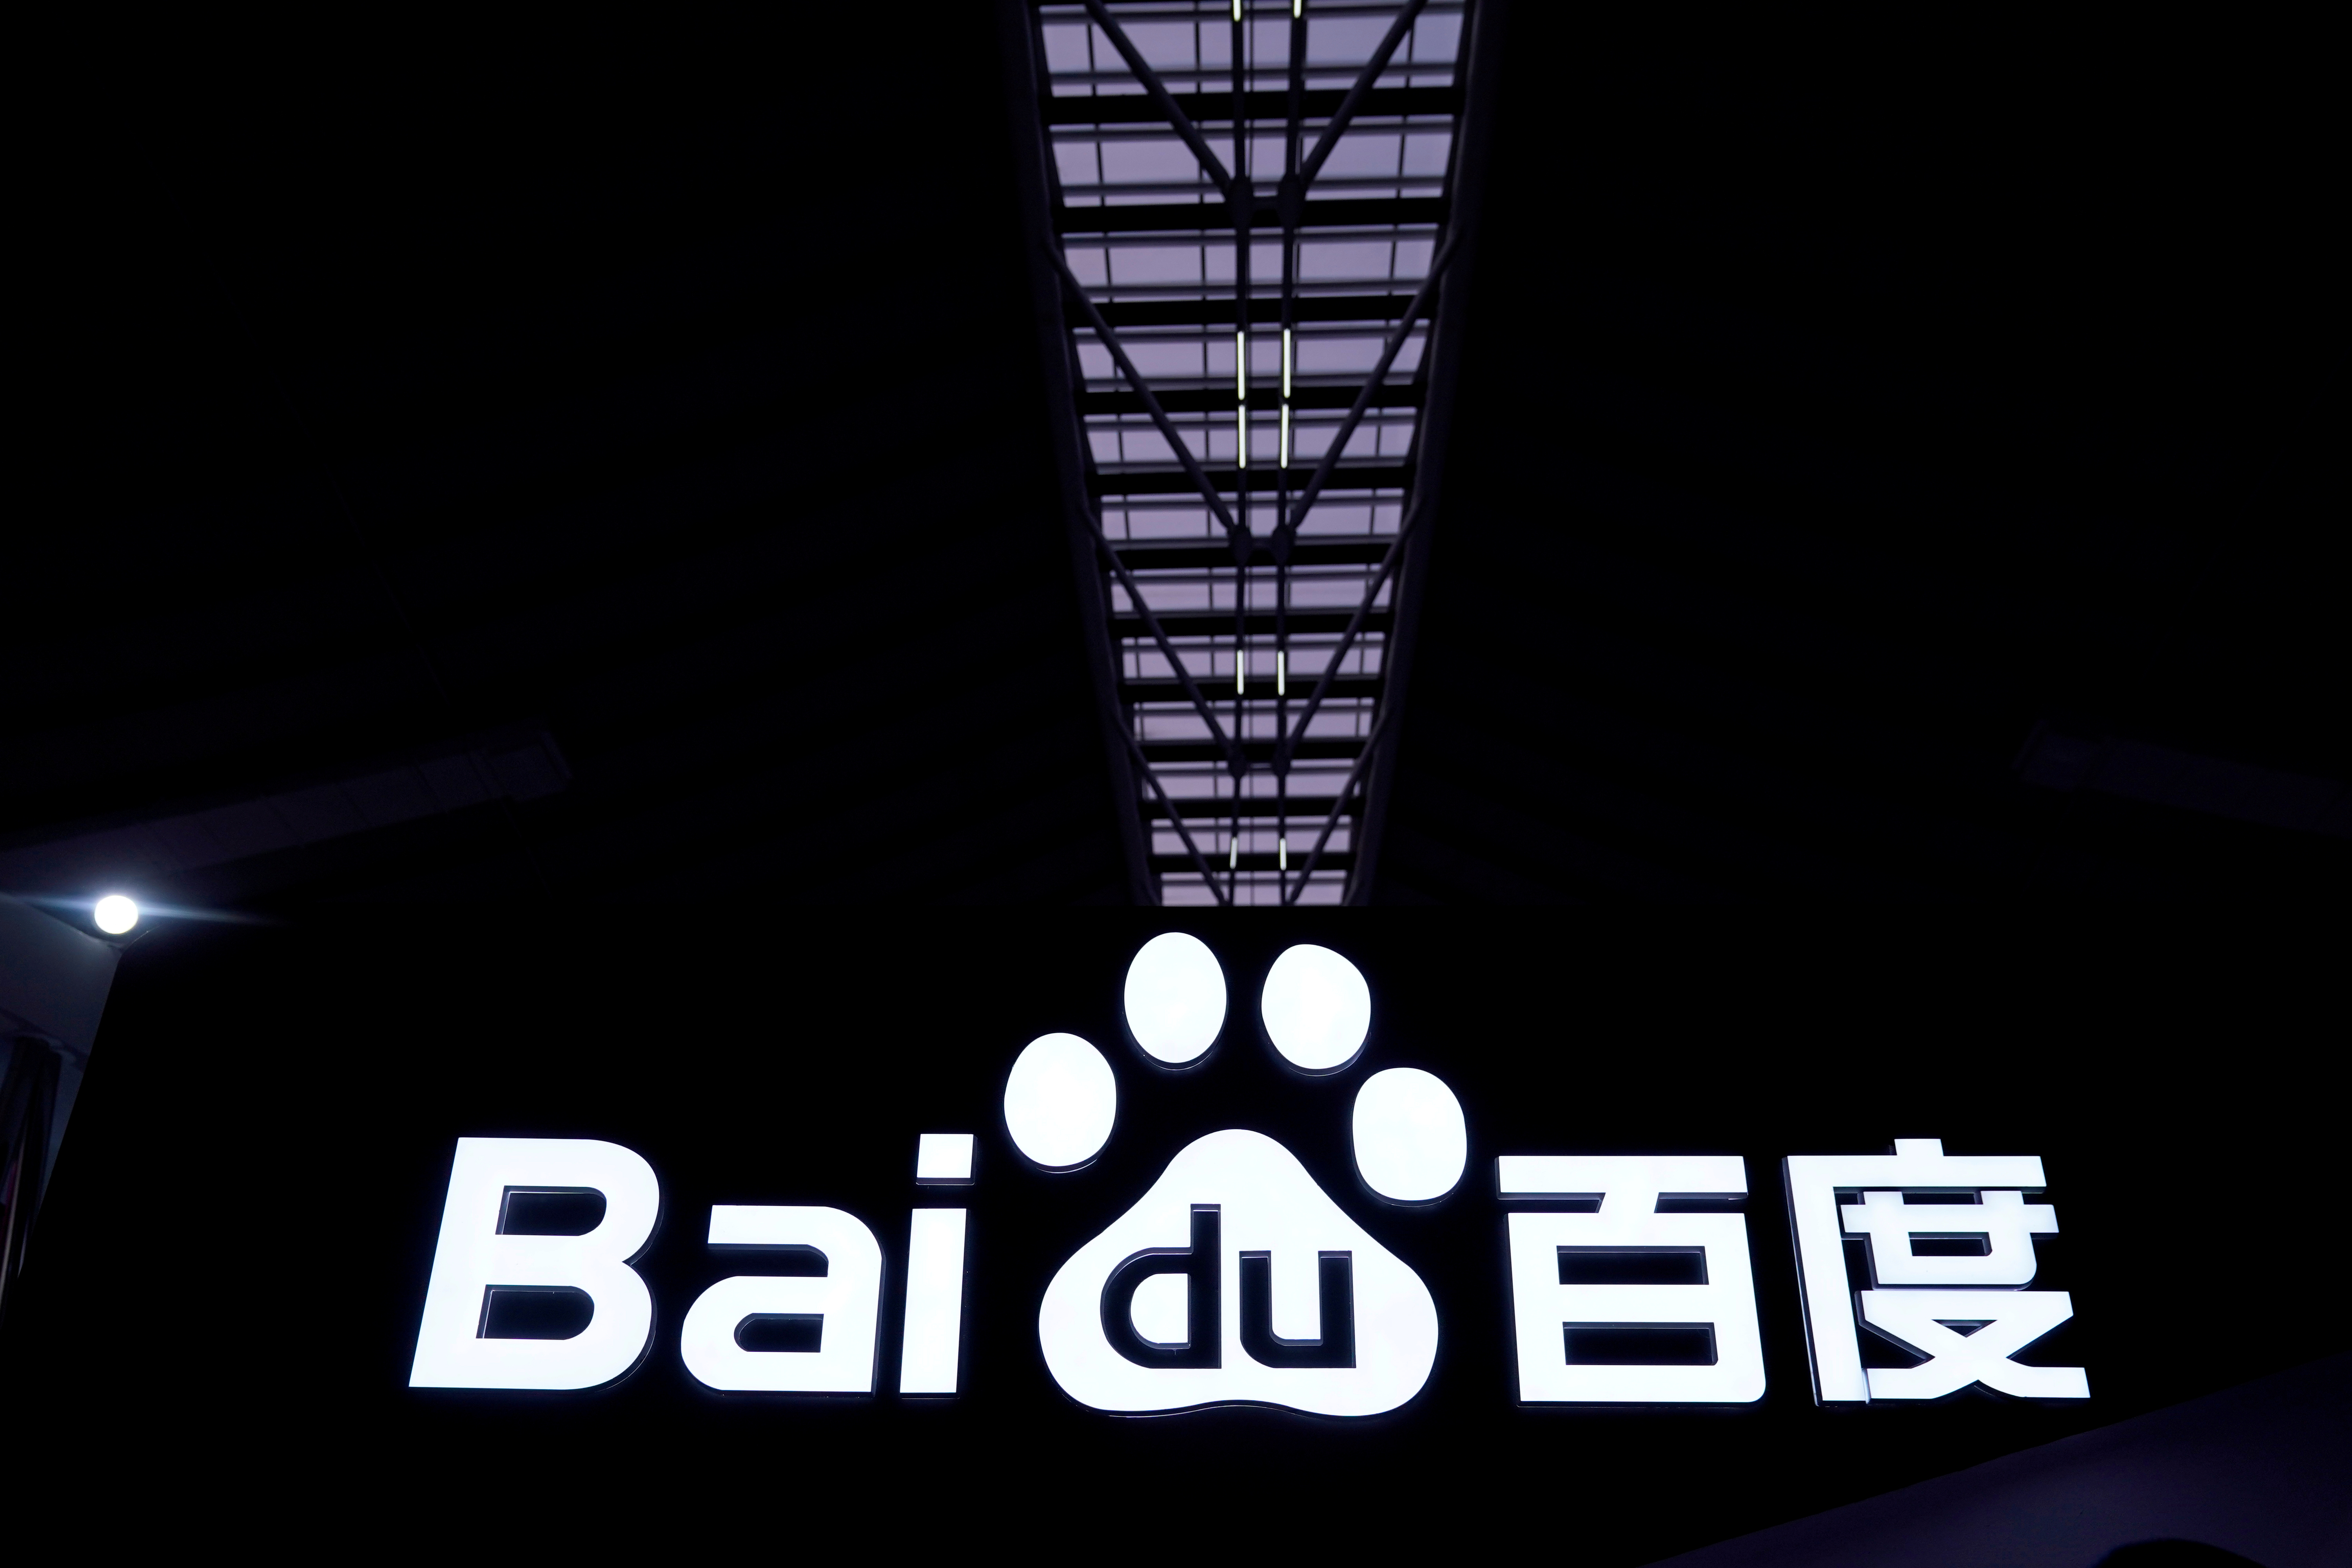 A Baidu sign is seen at the World Internet Conference (WIC) in Wuzhen, Zhejiang province, China, October 20, 2019. REUTERS/Aly Song